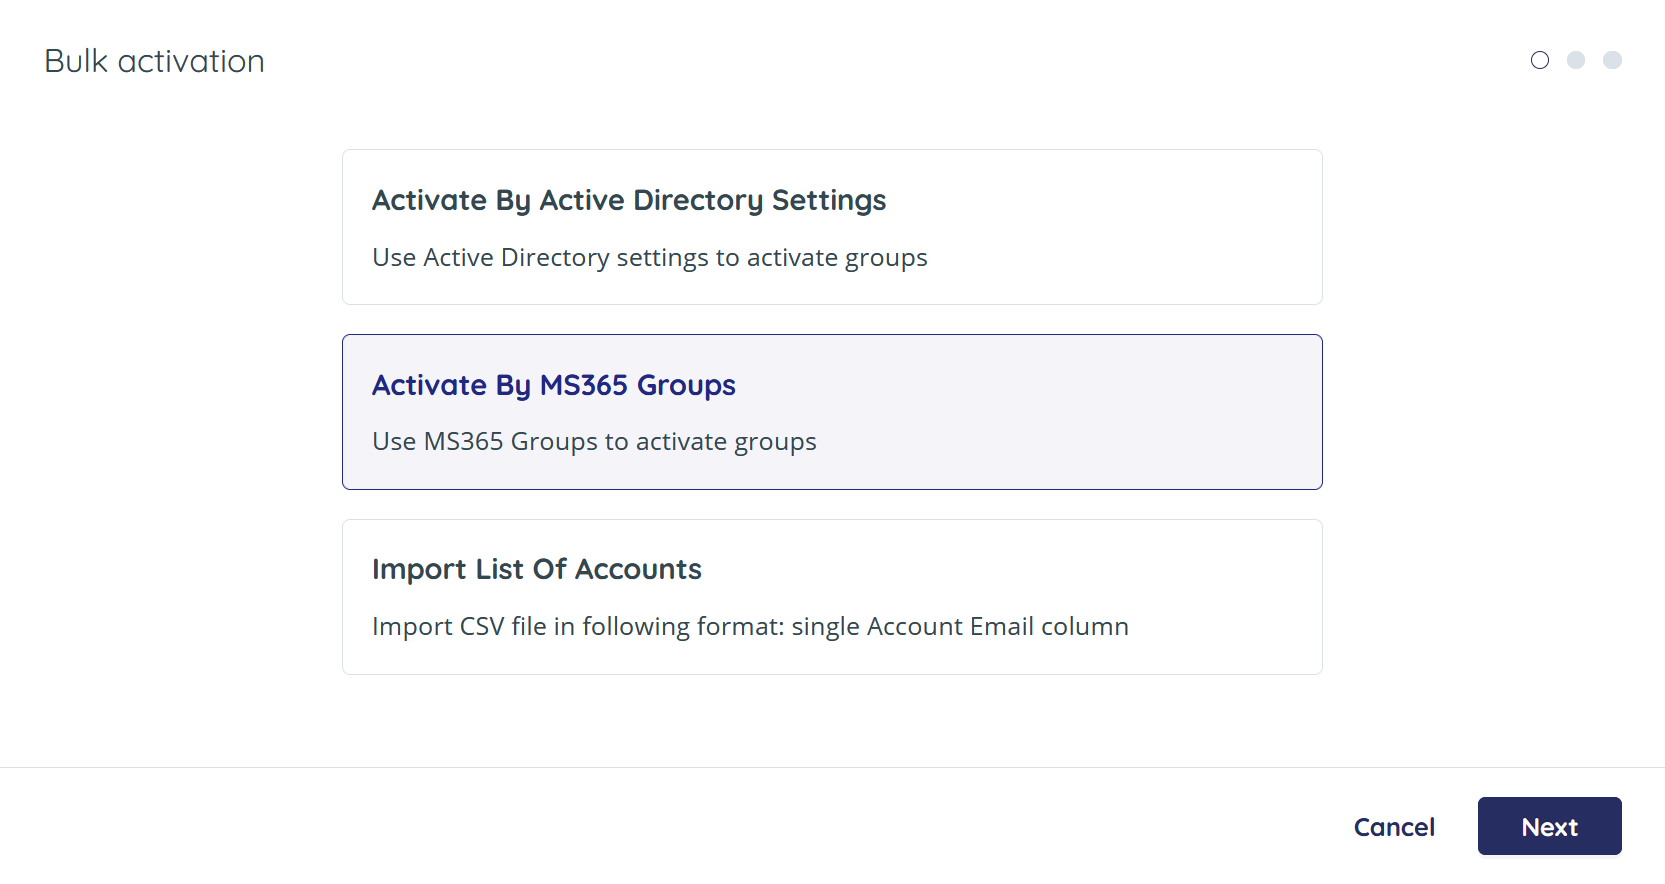 Thumbnail for bulk-activation-options-groups-step1.png